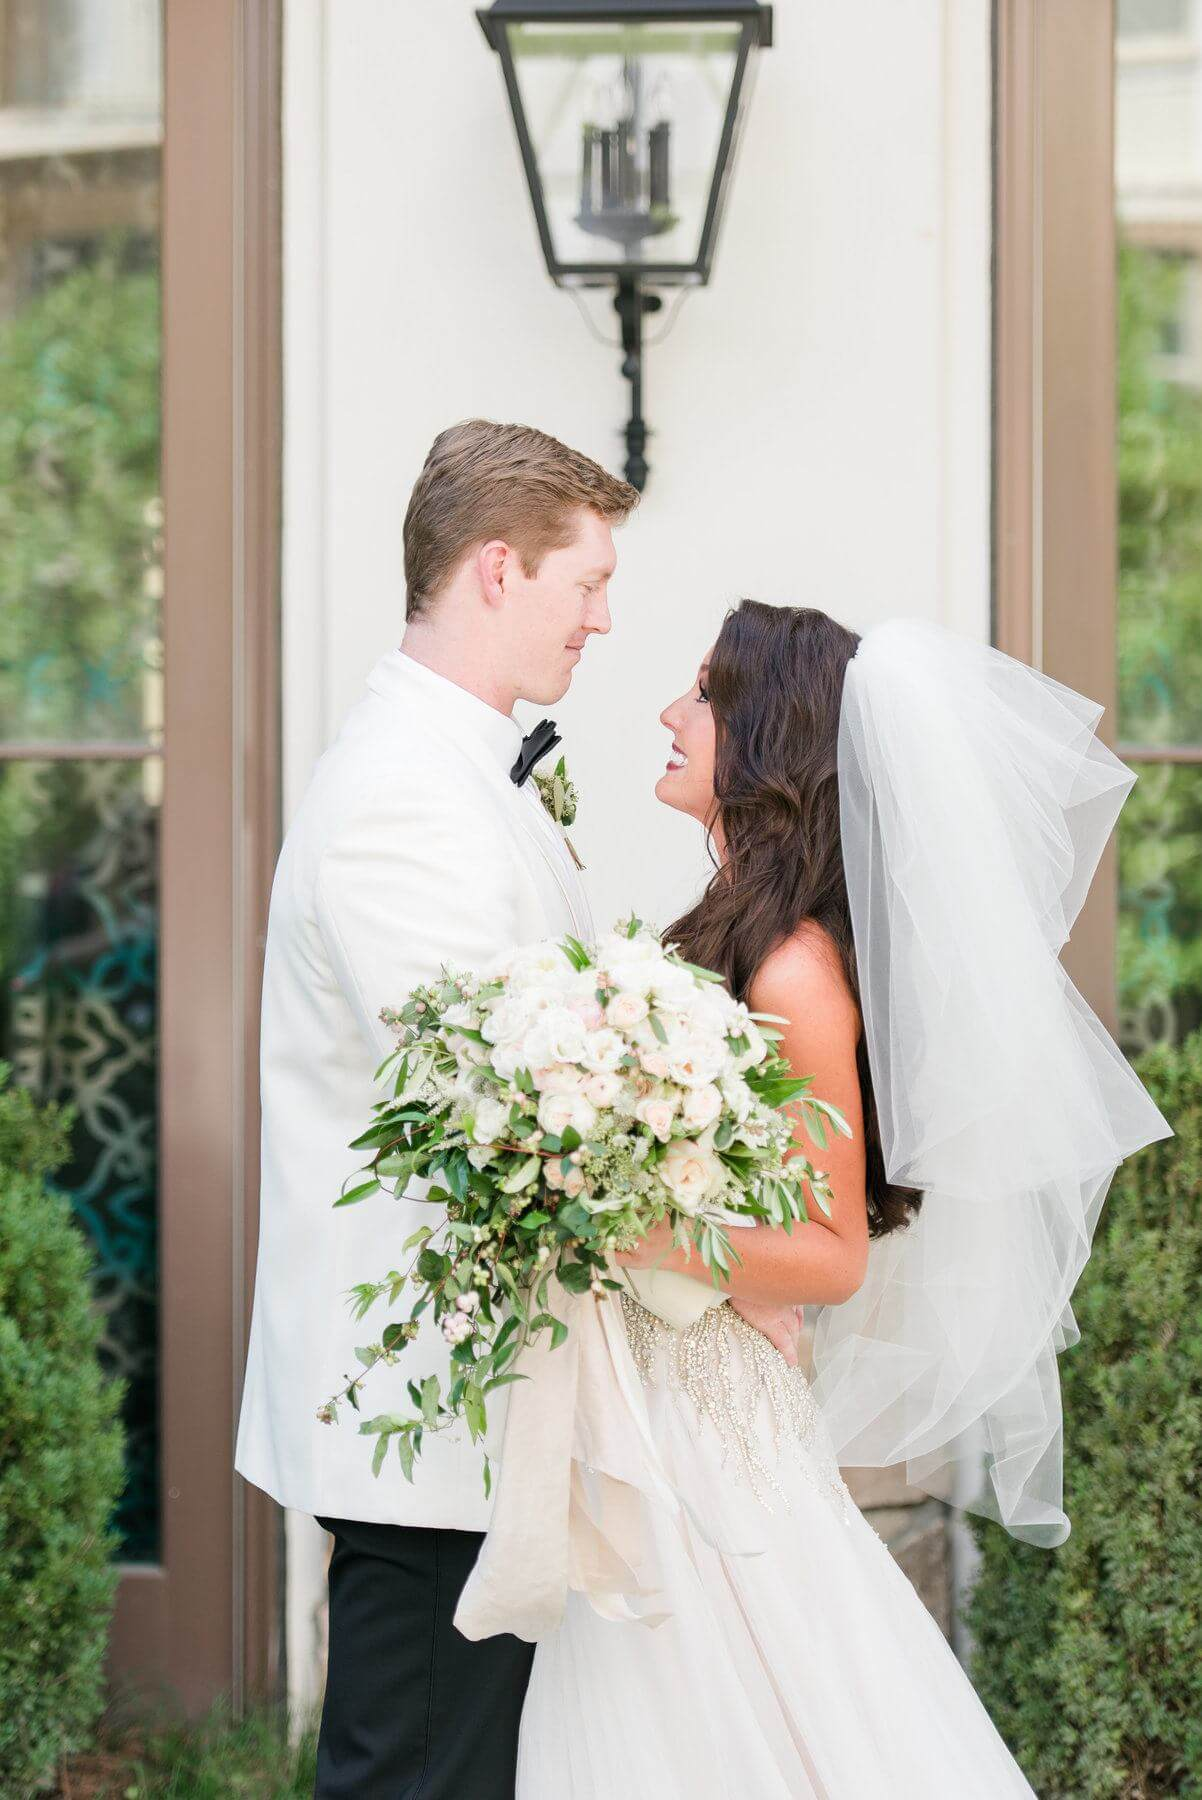 We love a sweet first look! How smitten do these two lovebirds look?